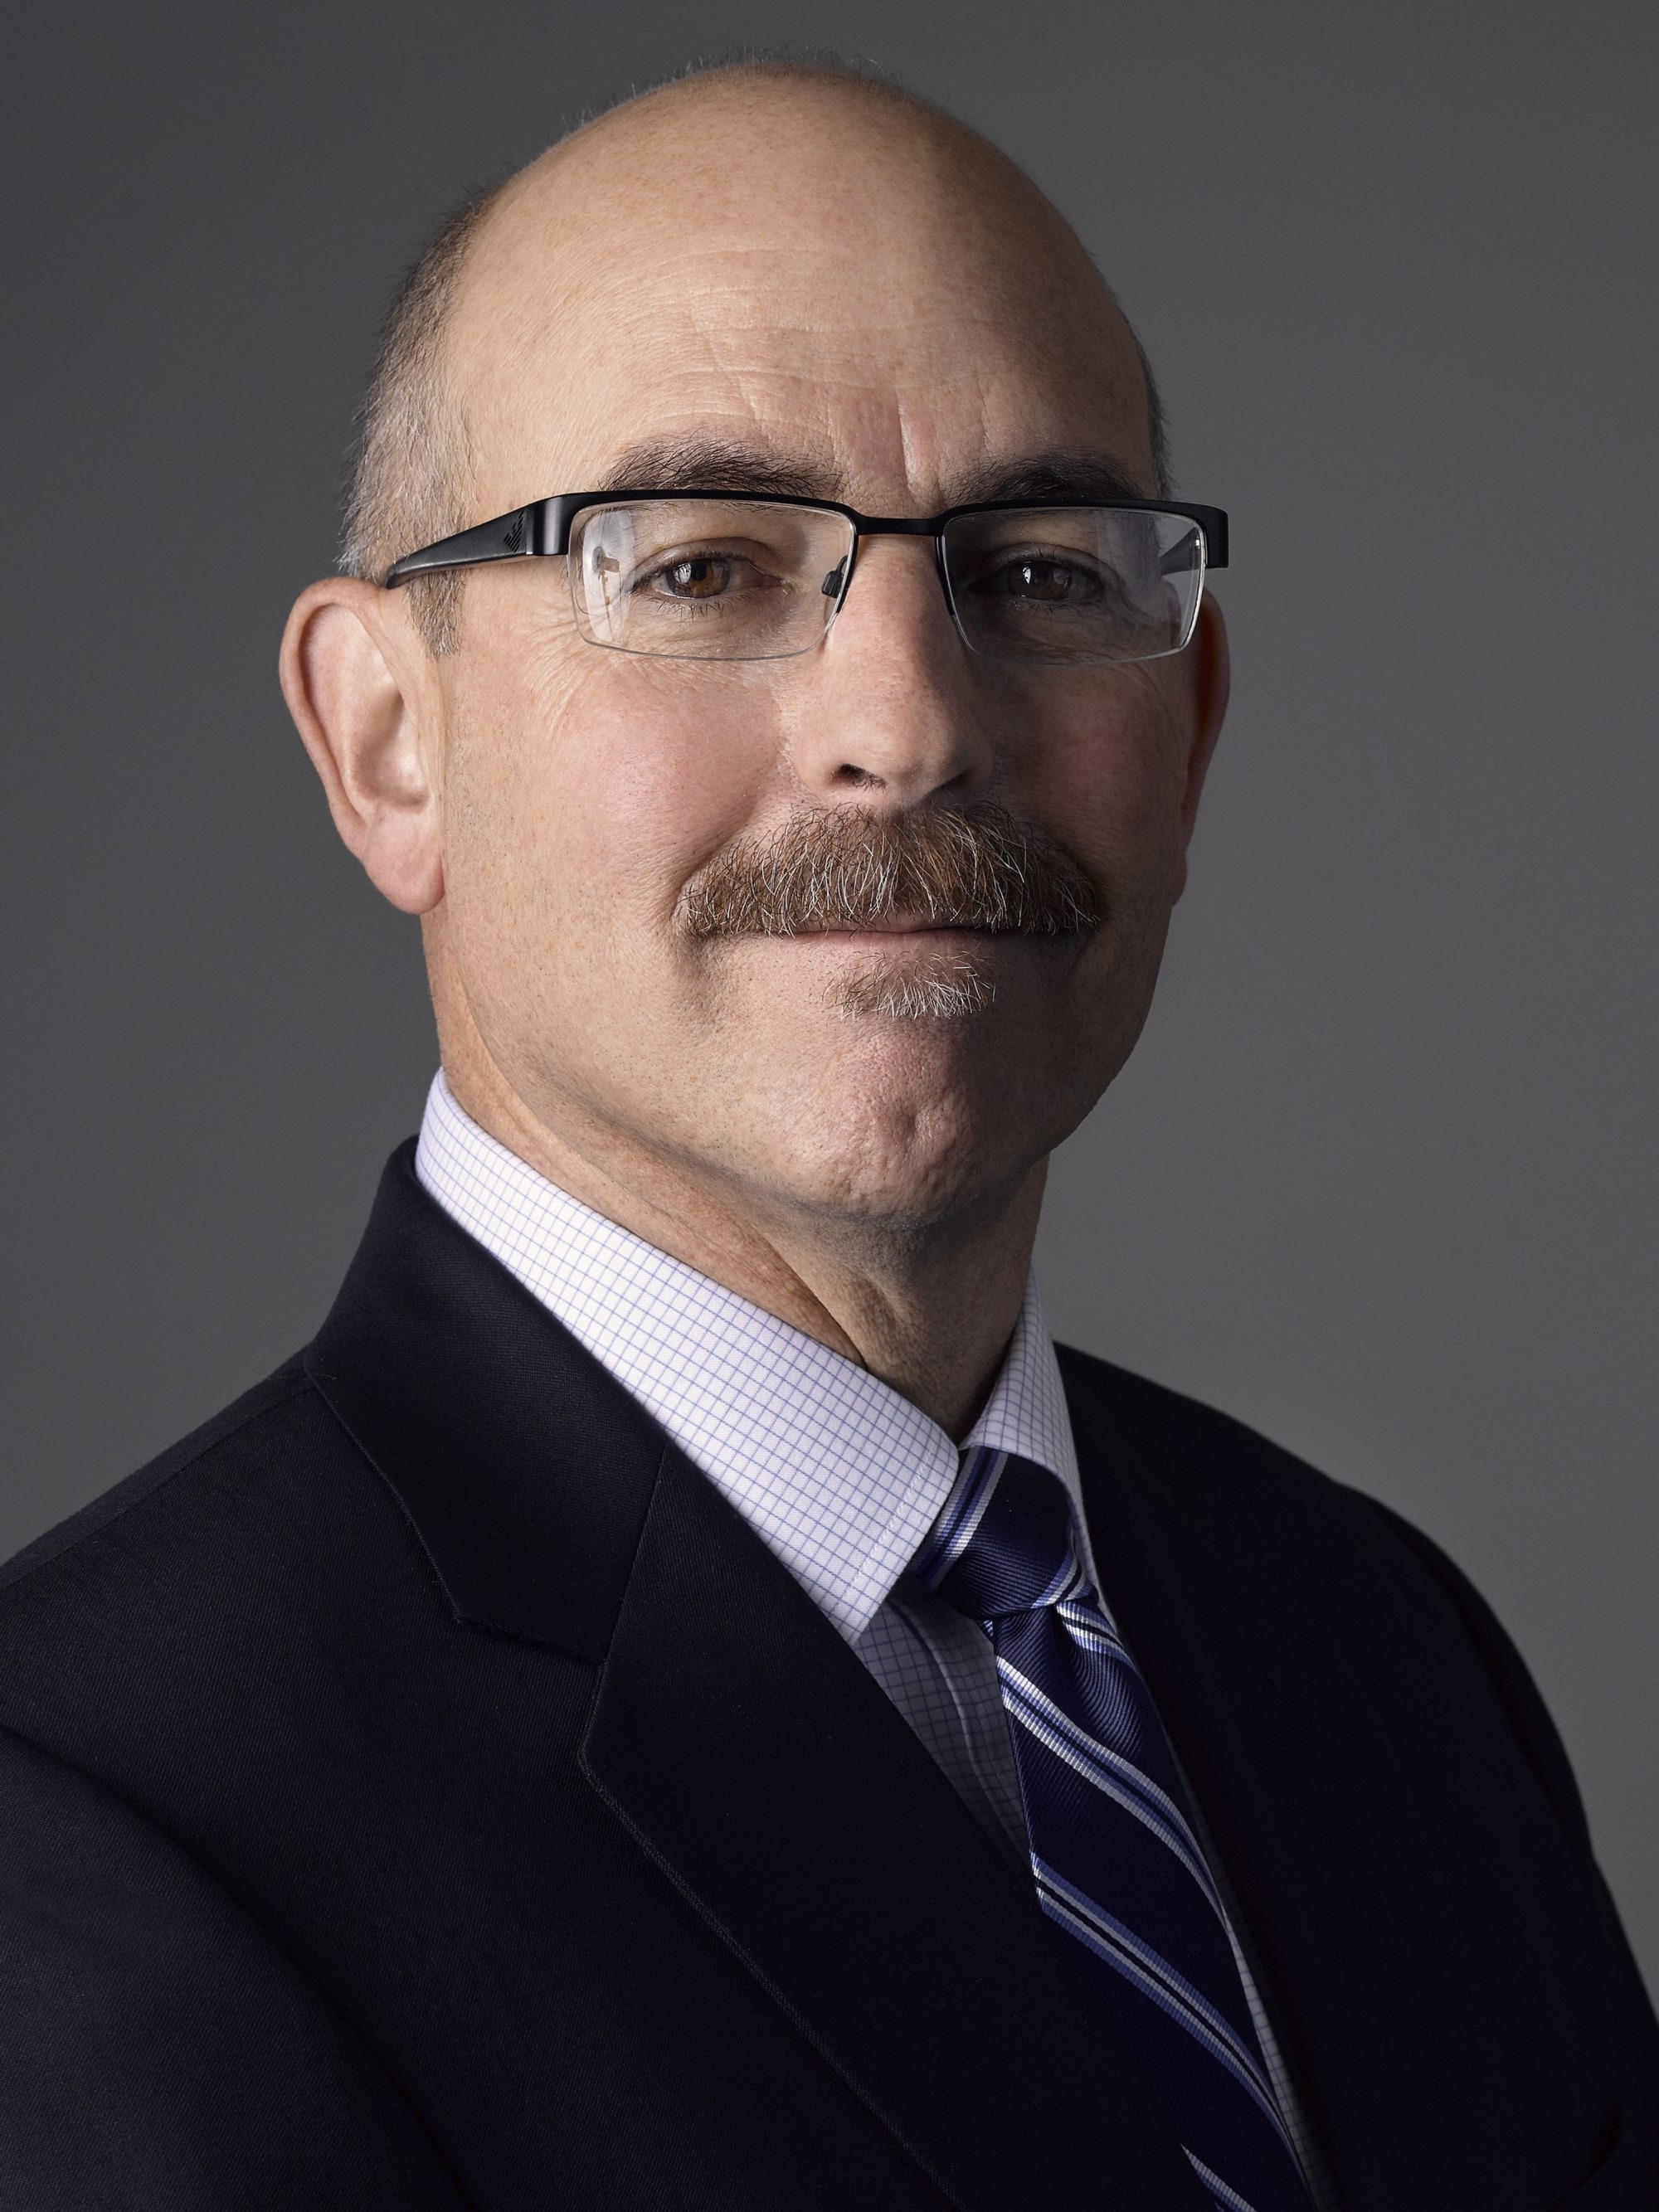 Rick W. Kennedy, president and CEO of Hodgson Russ LLP